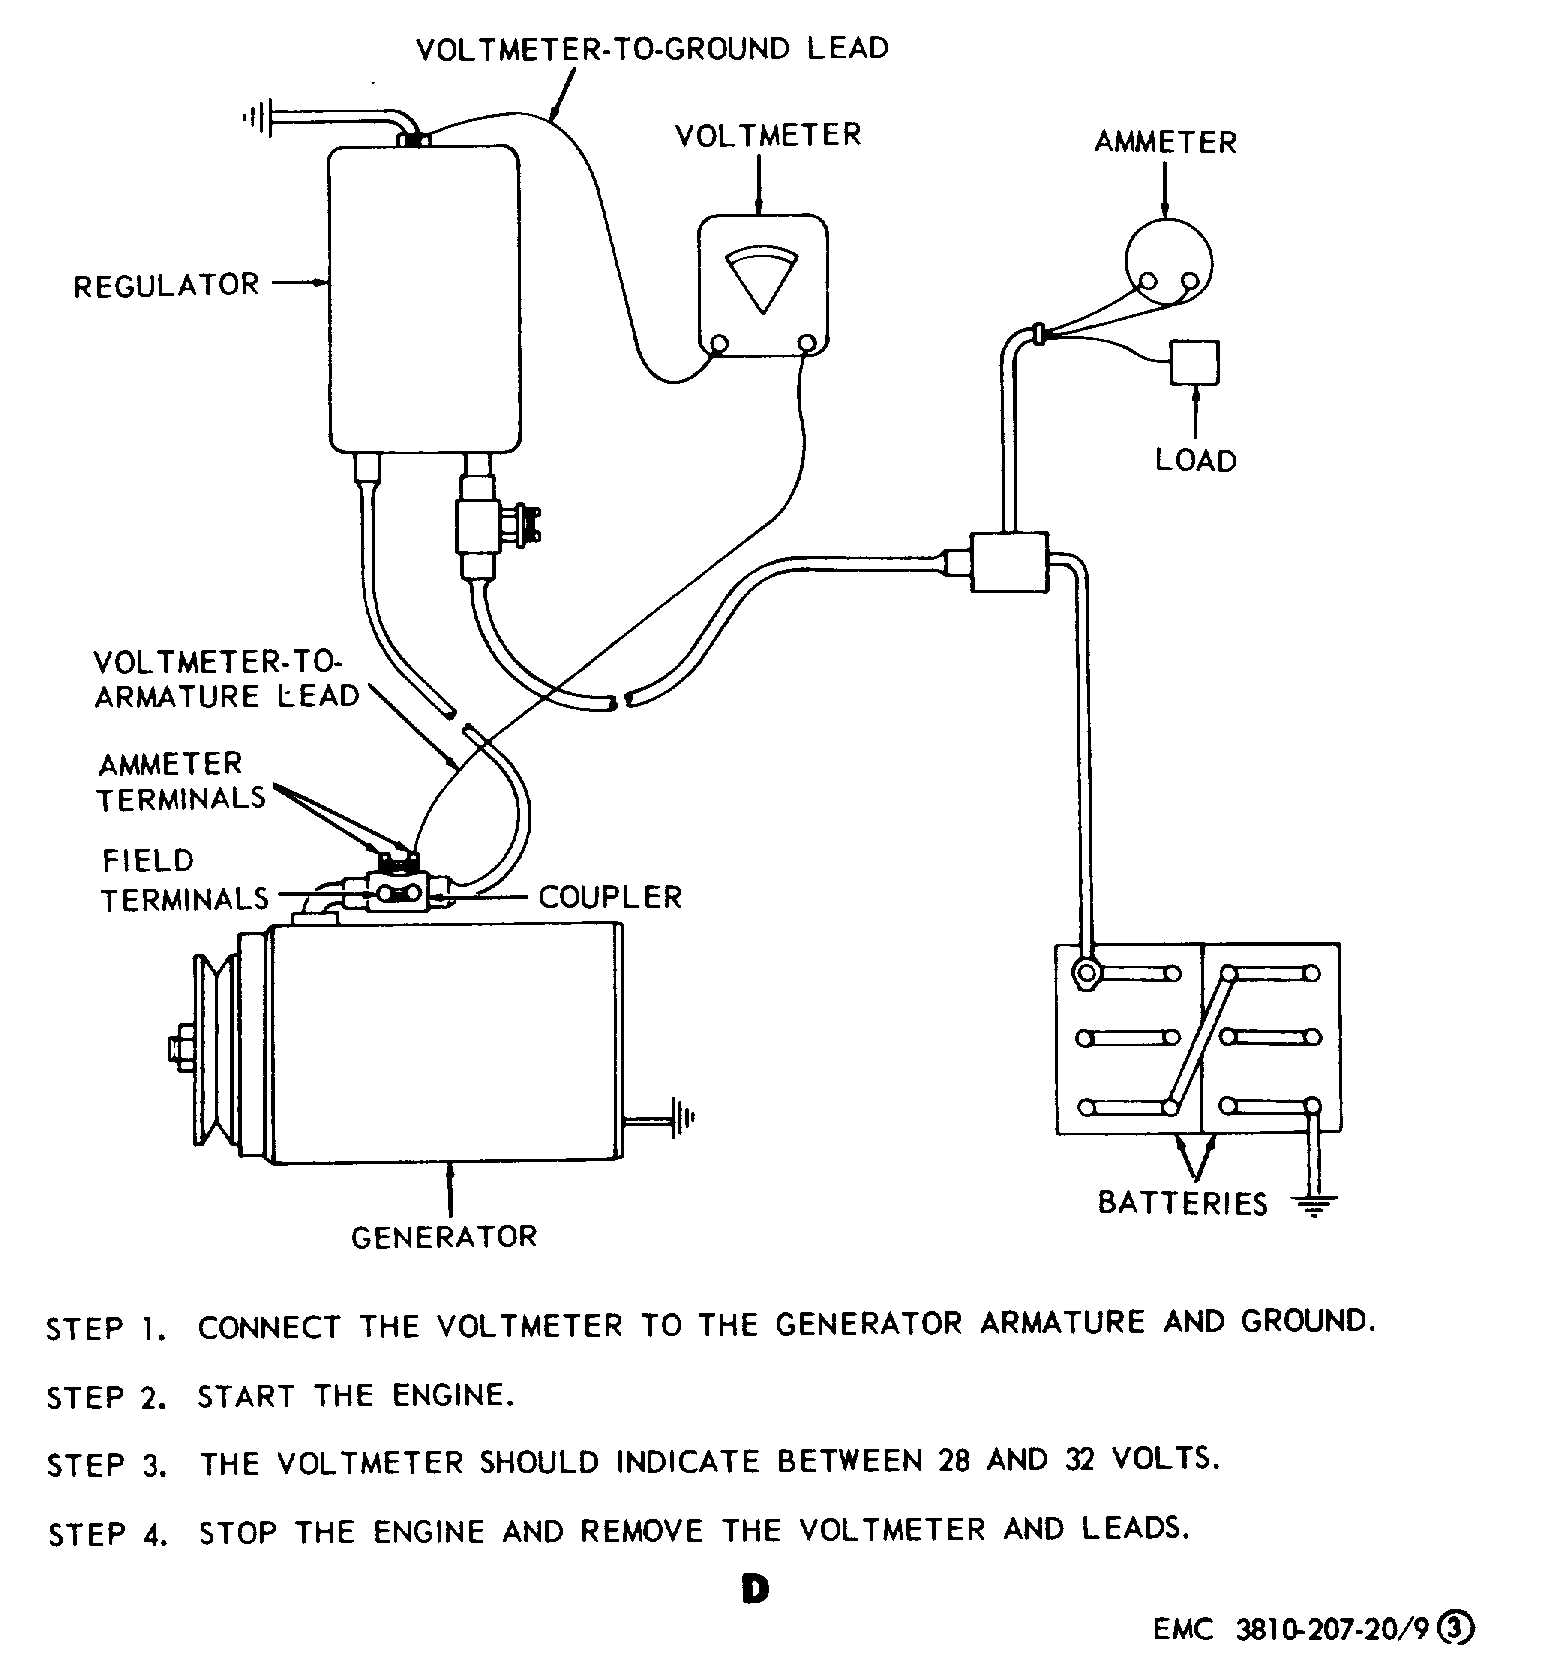 59 ford generator voltage regulator wiring diagram ford tractor voltage regulator wiring diagram figure 9. generator regulator removal, adjustment, and ...